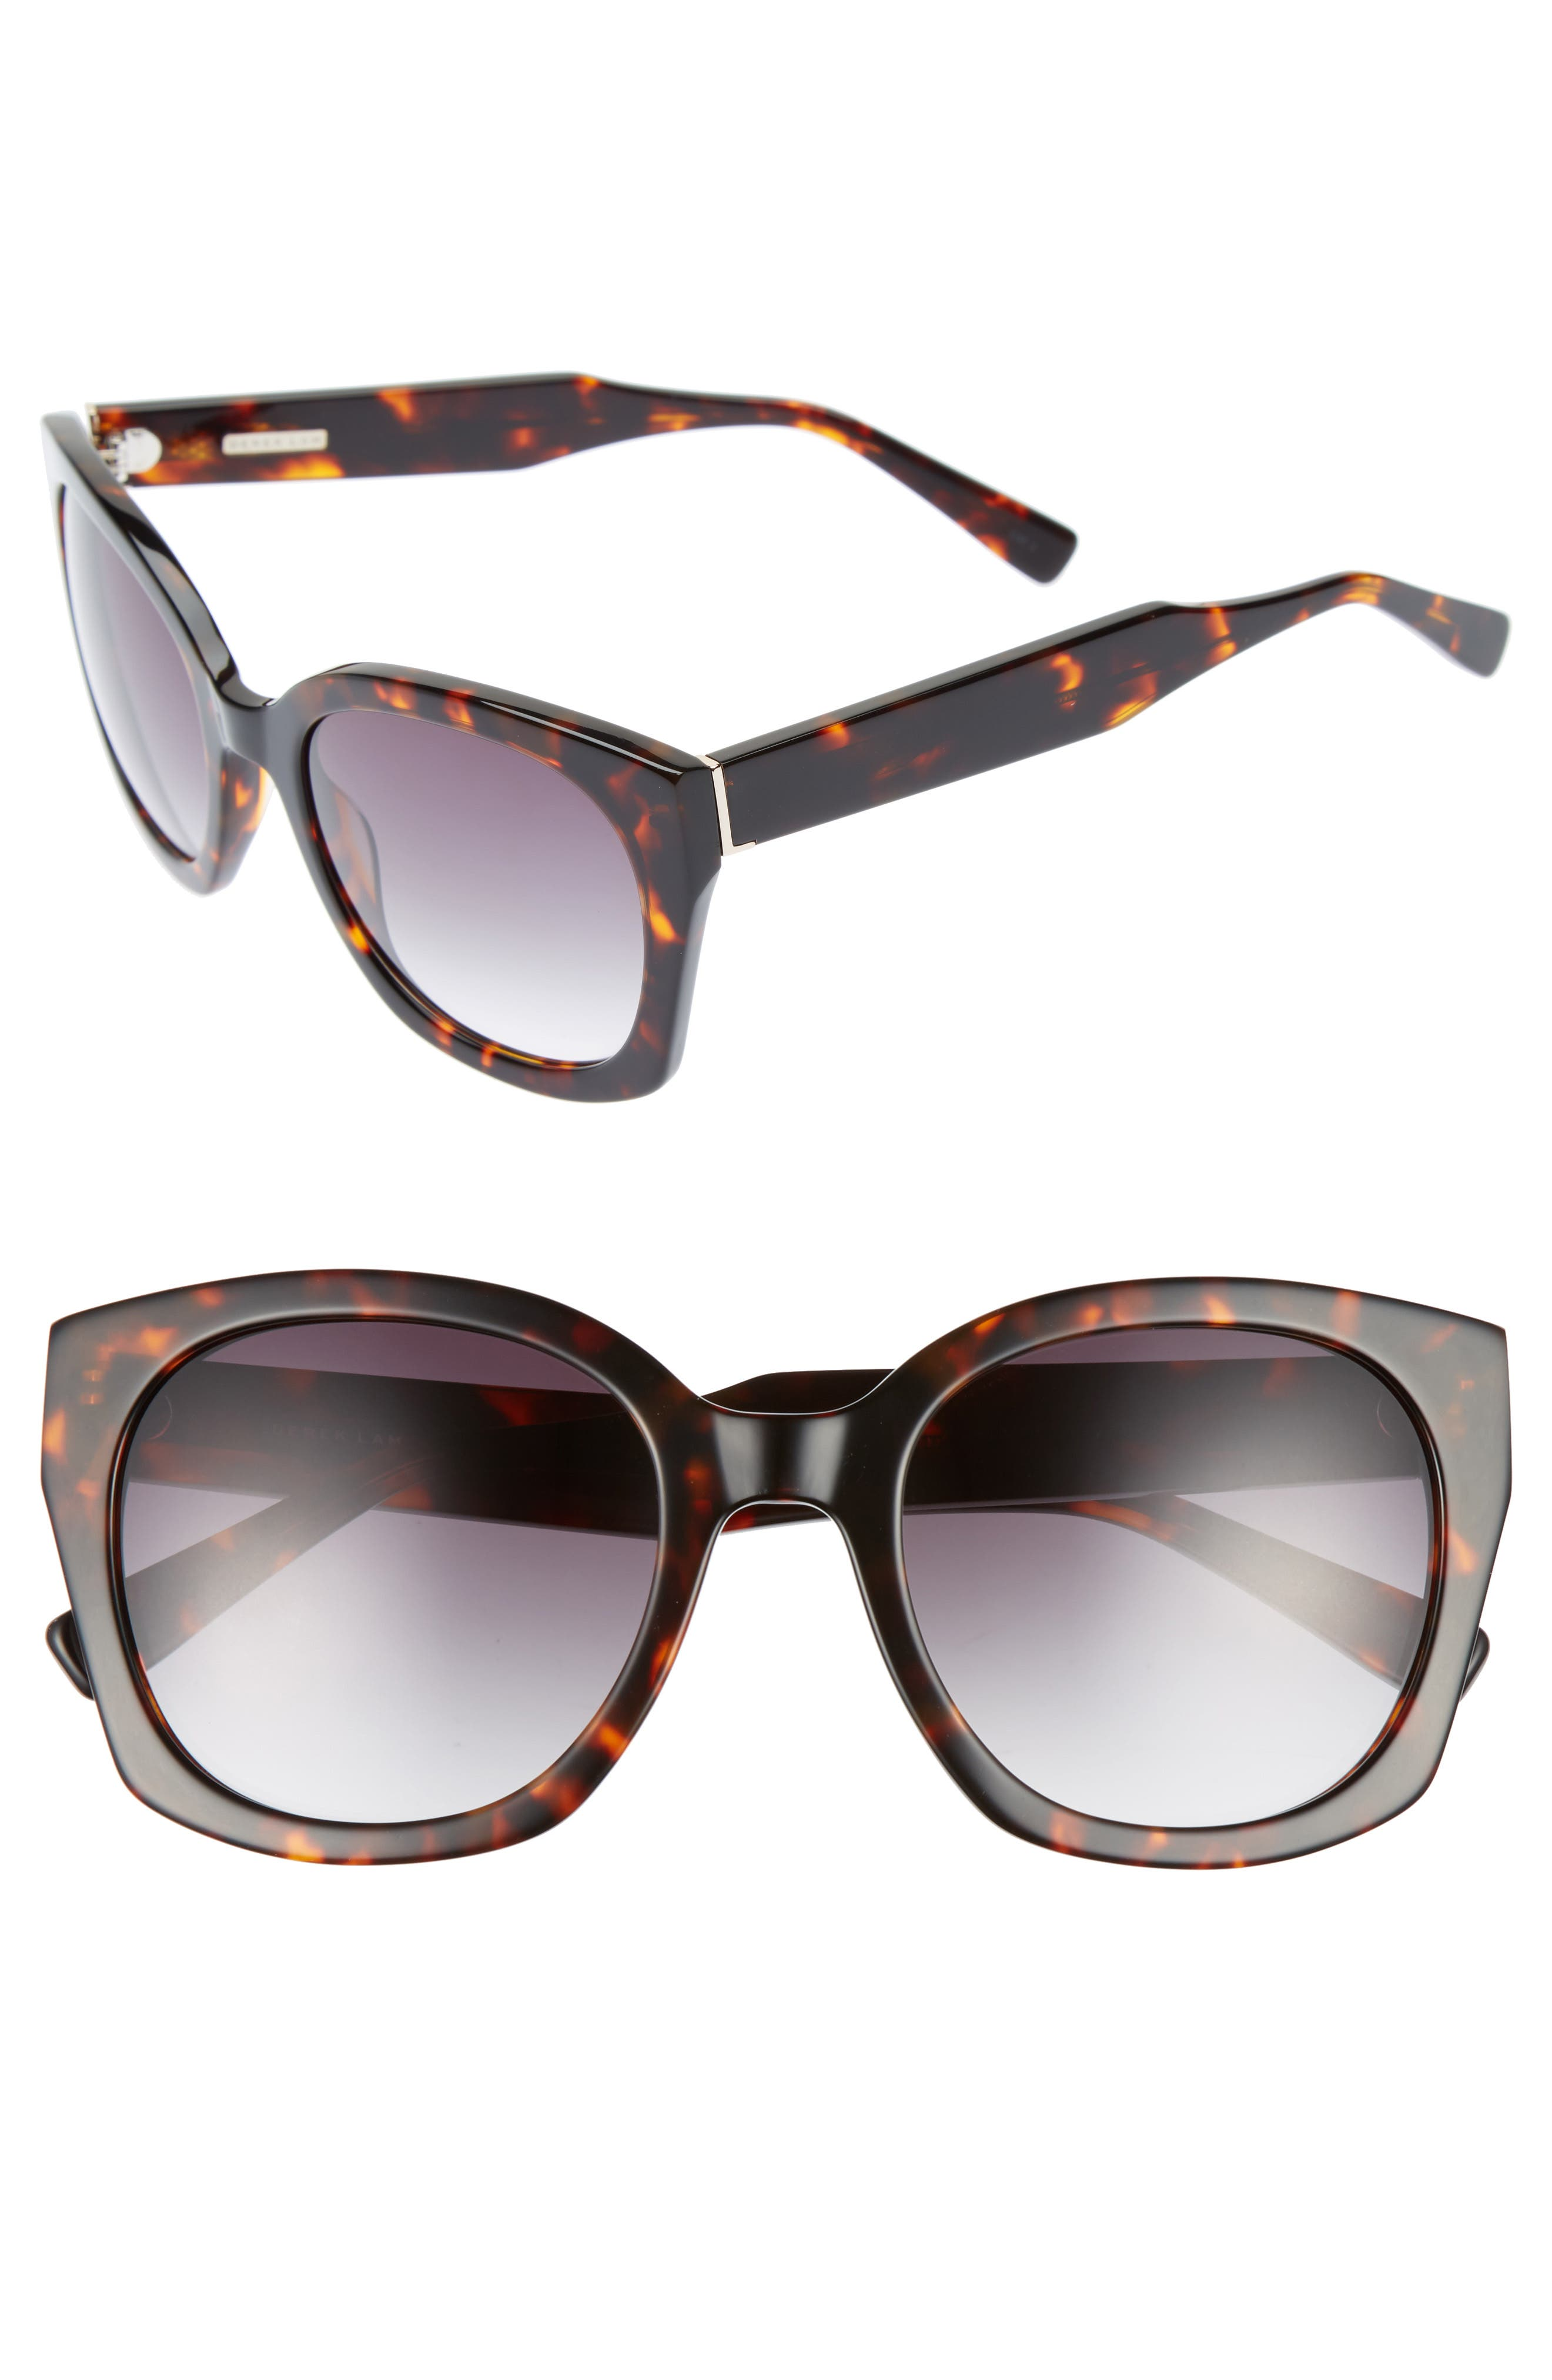 Sadie 54mm Sunglasses,                             Main thumbnail 1, color,                             HAVANA TORTOISE